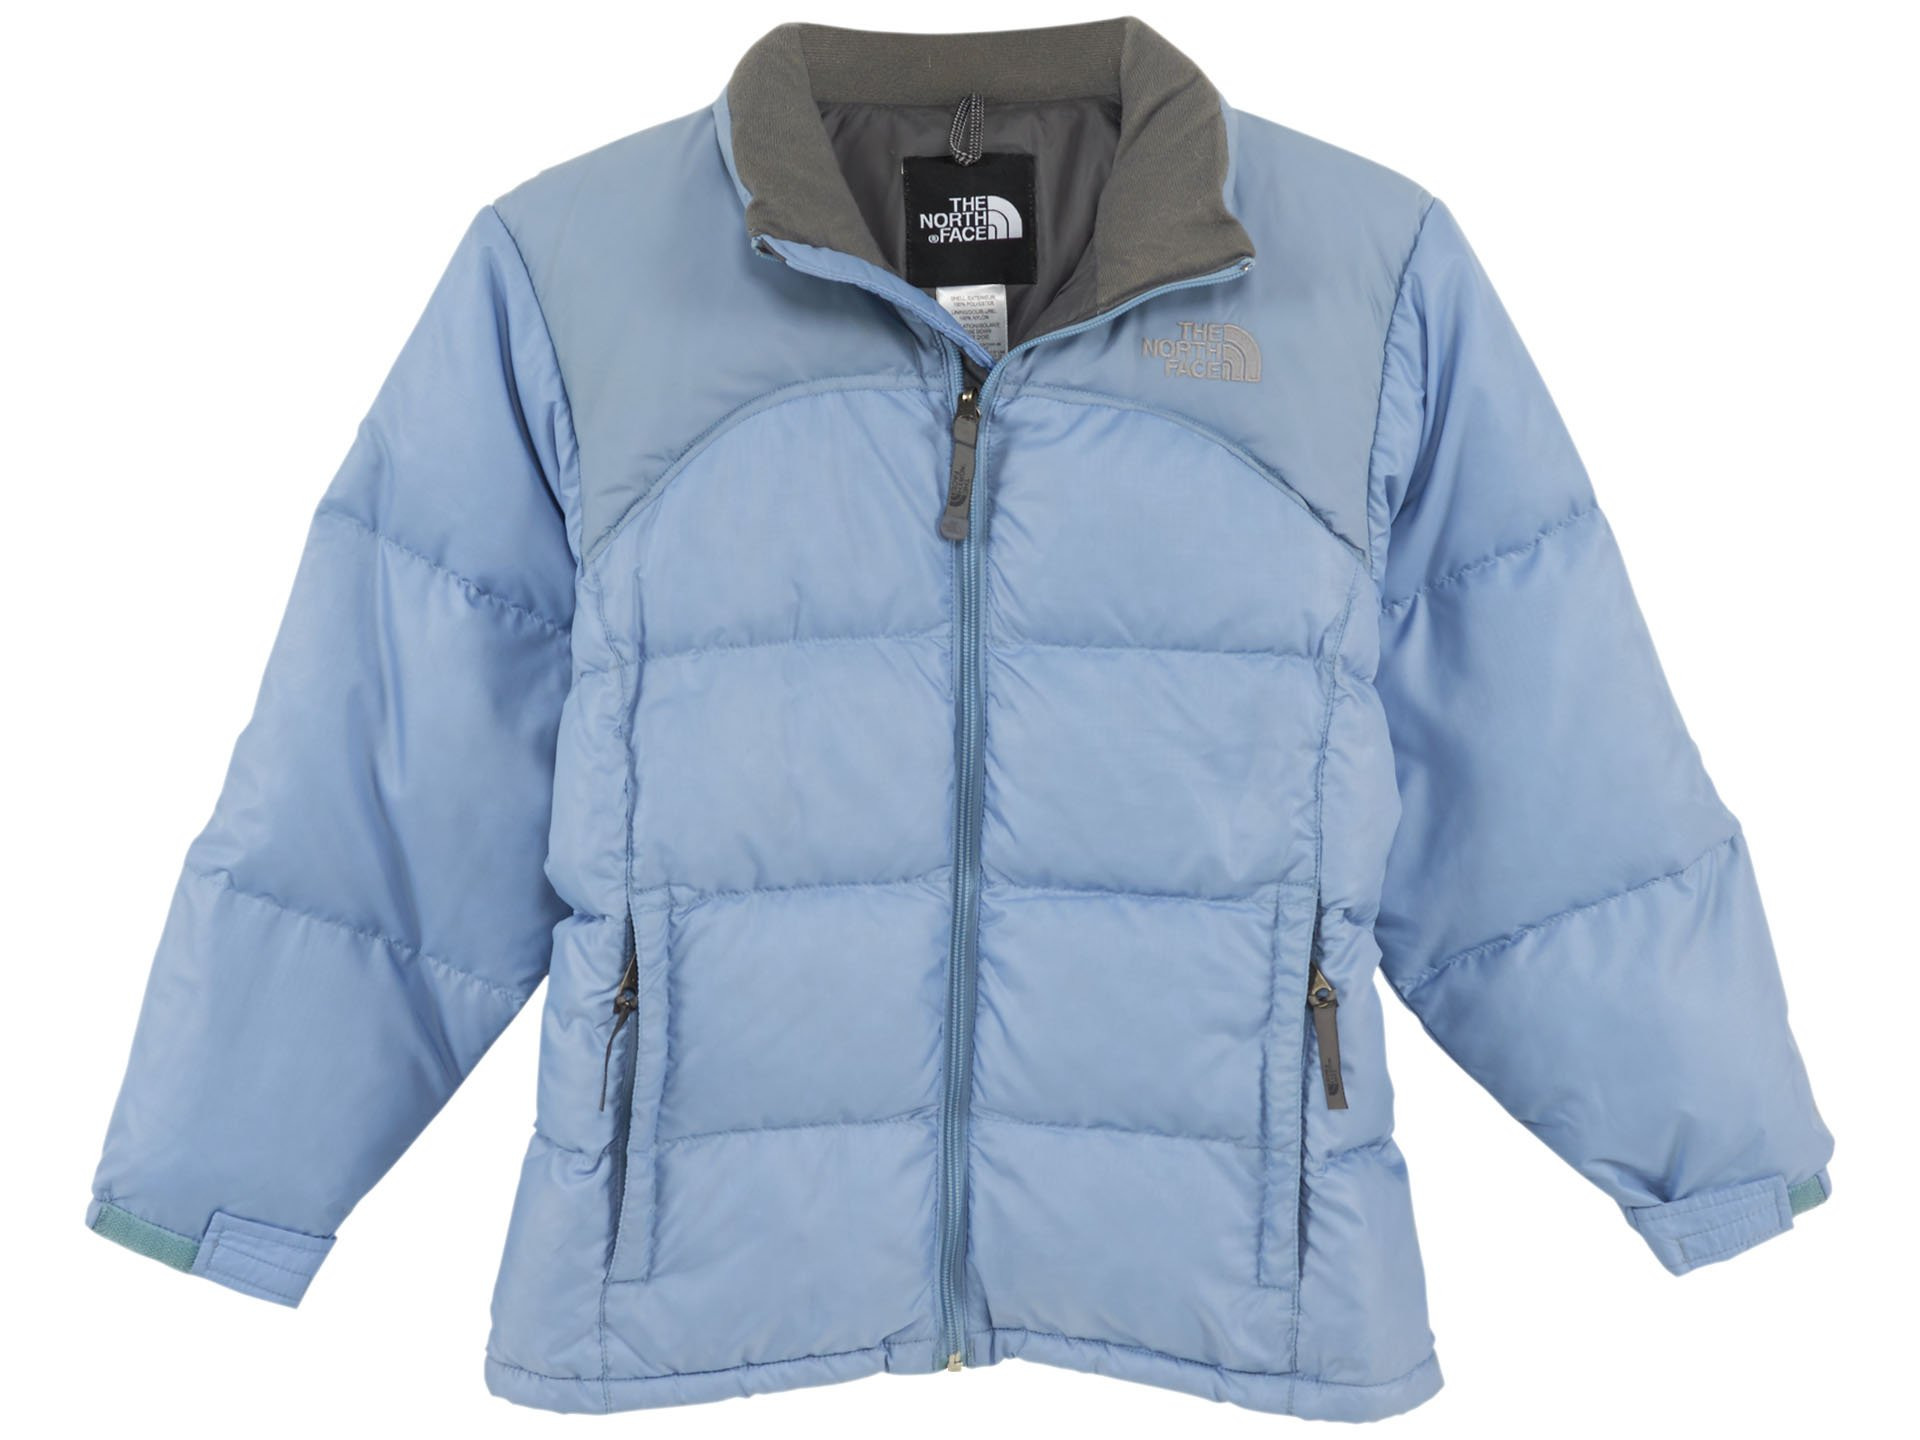 The North Face Nuptse Jacket Big Kids Style: A494-01C Size: L